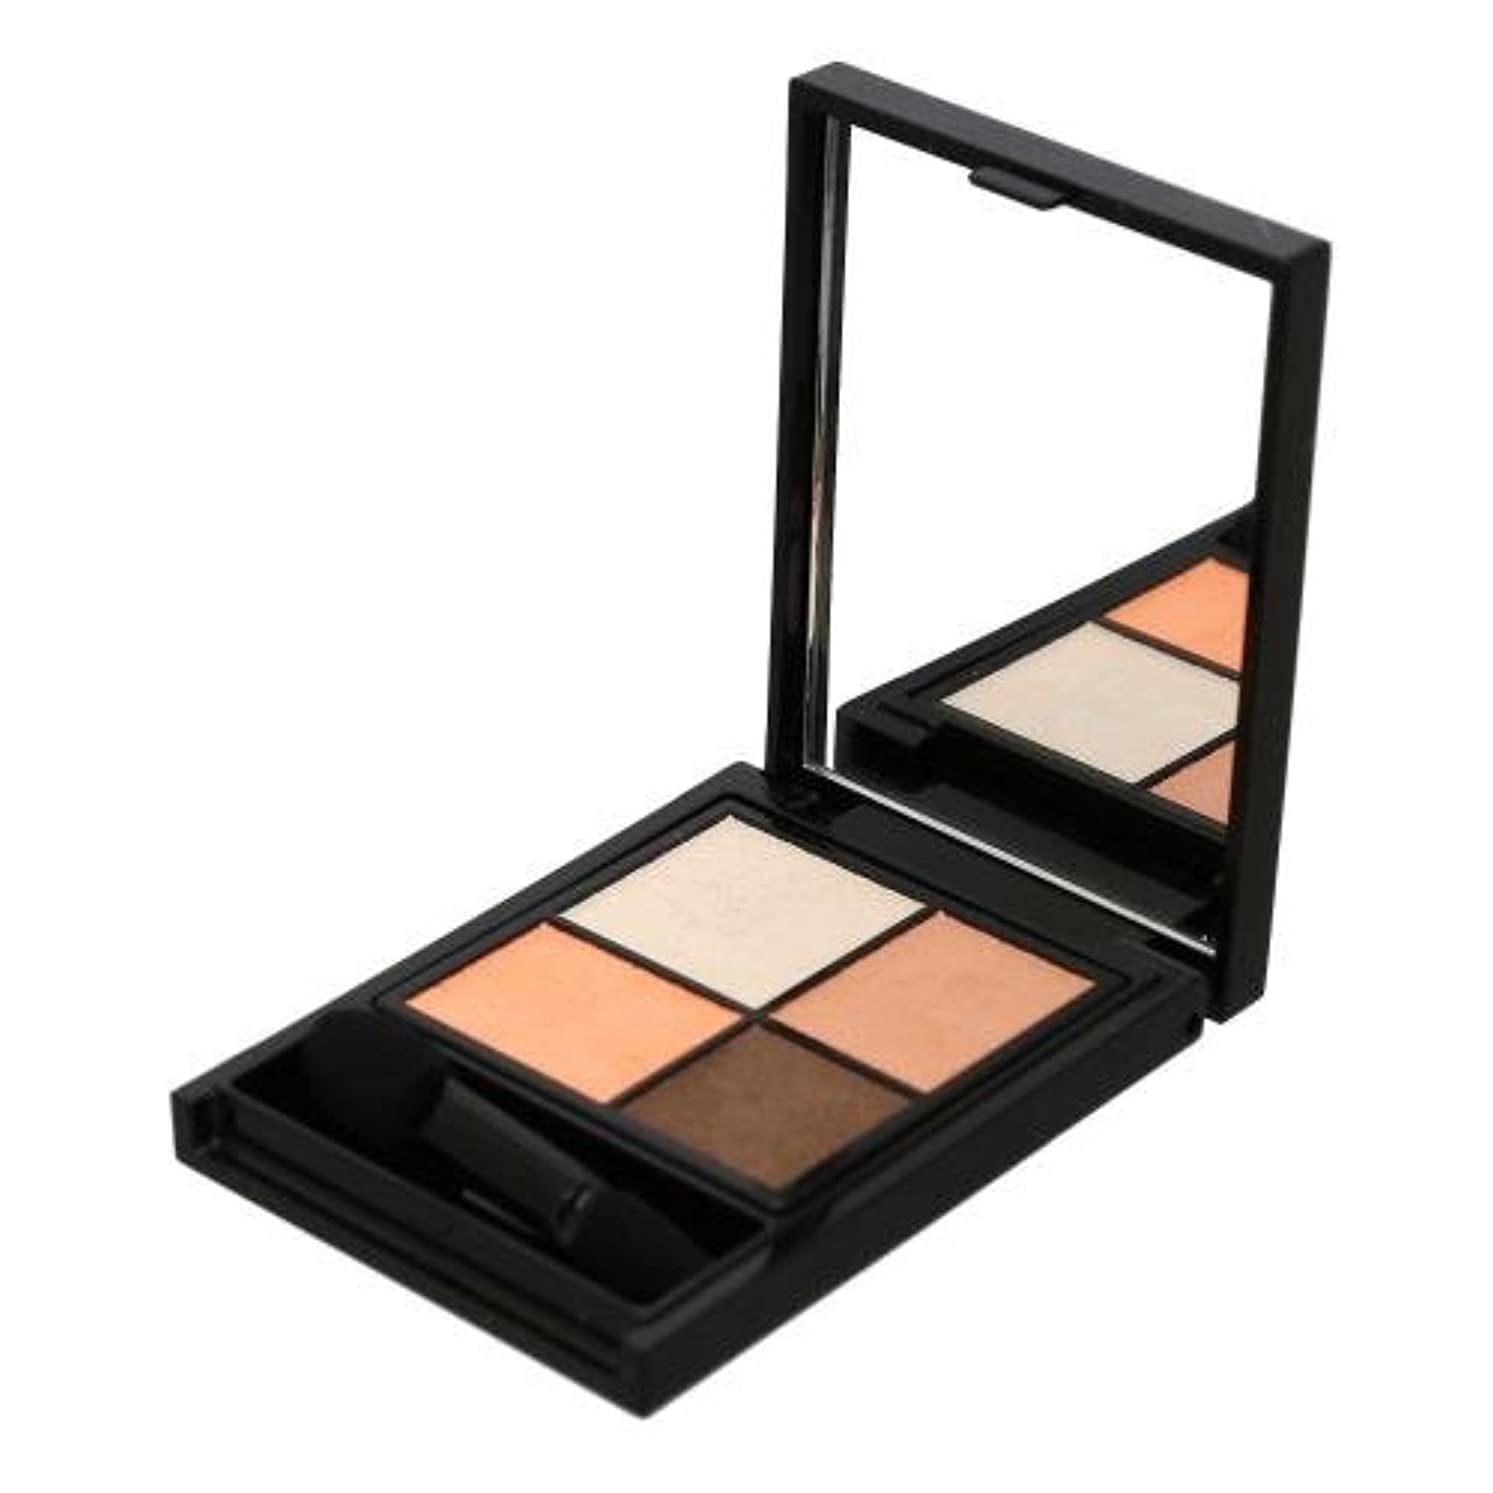 [Tonymoly] トニーモリ Shimmer Jeweling Eyes 2.7g #02 Coral Jeweling by TONYMOLY